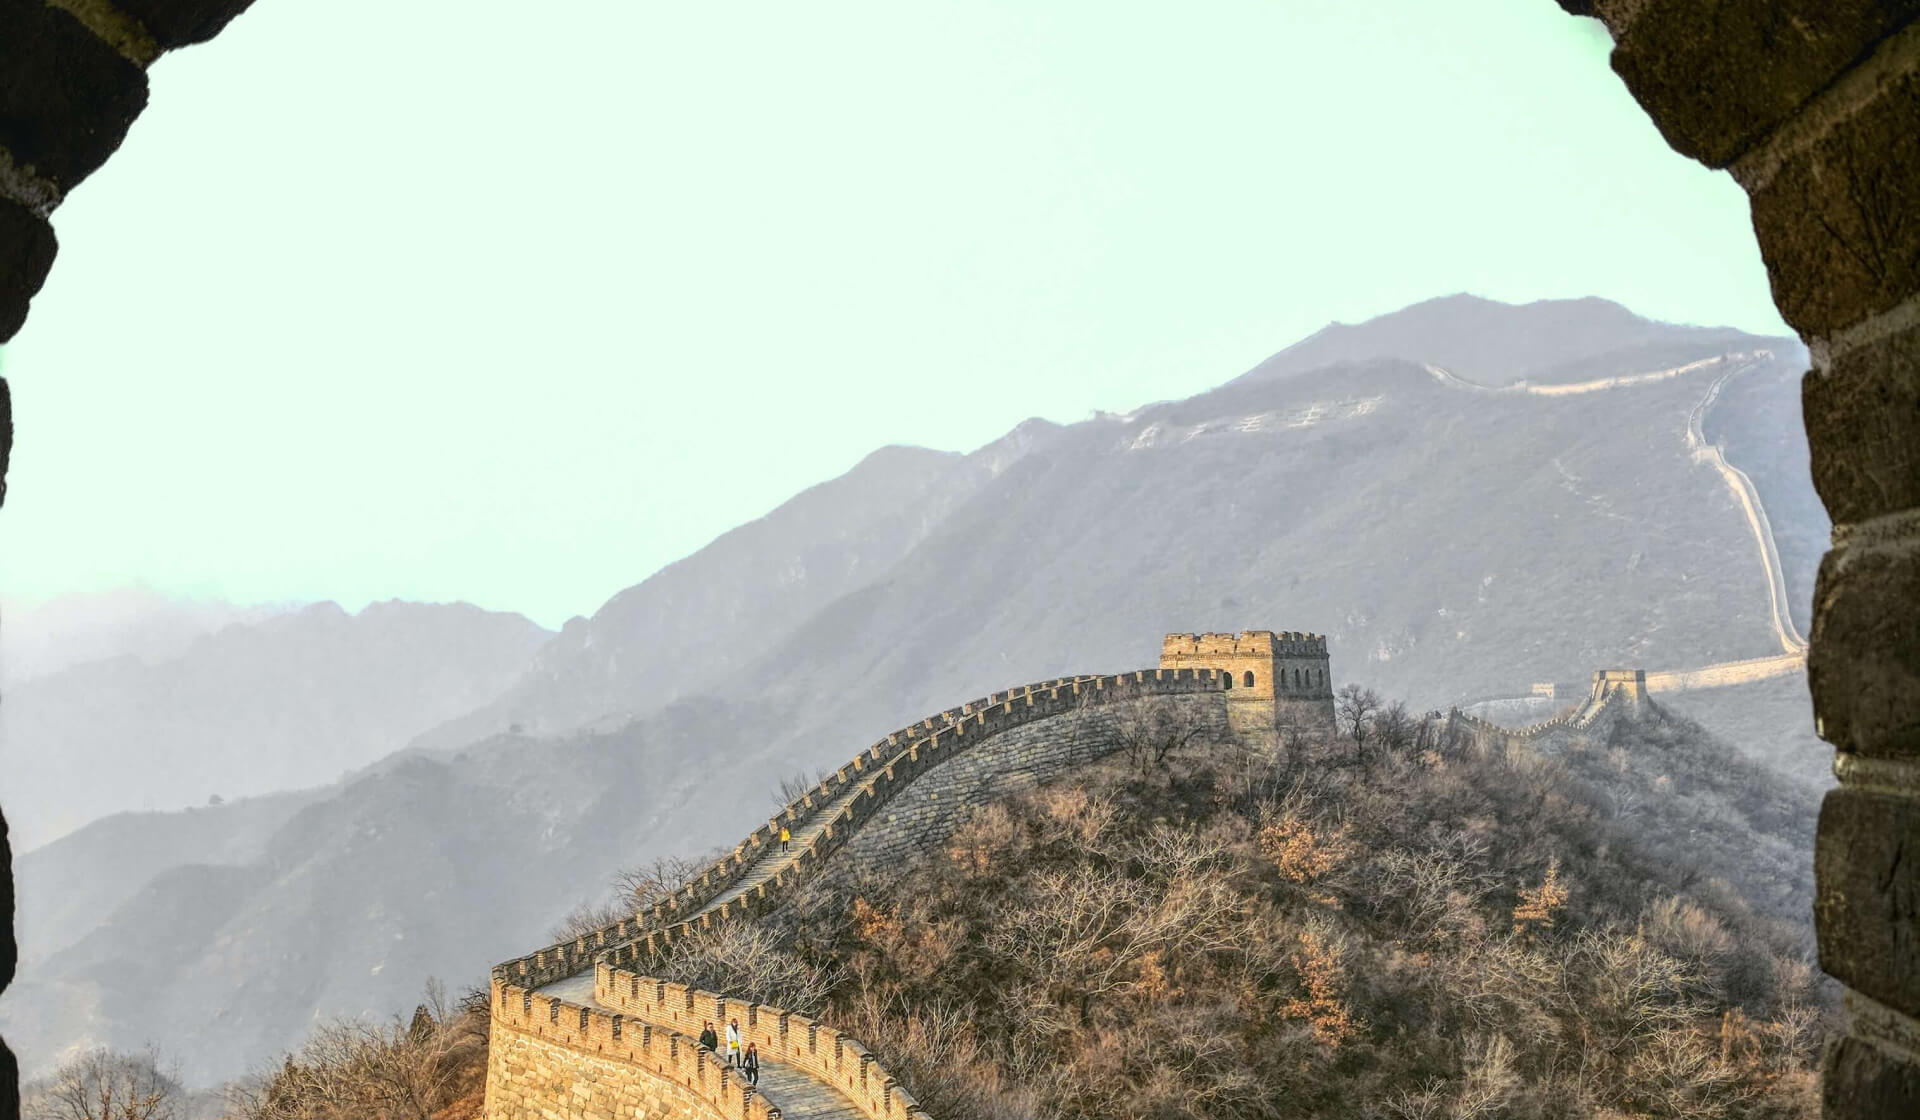 View through an open window of the Great Wall of China disappearing over the moutains